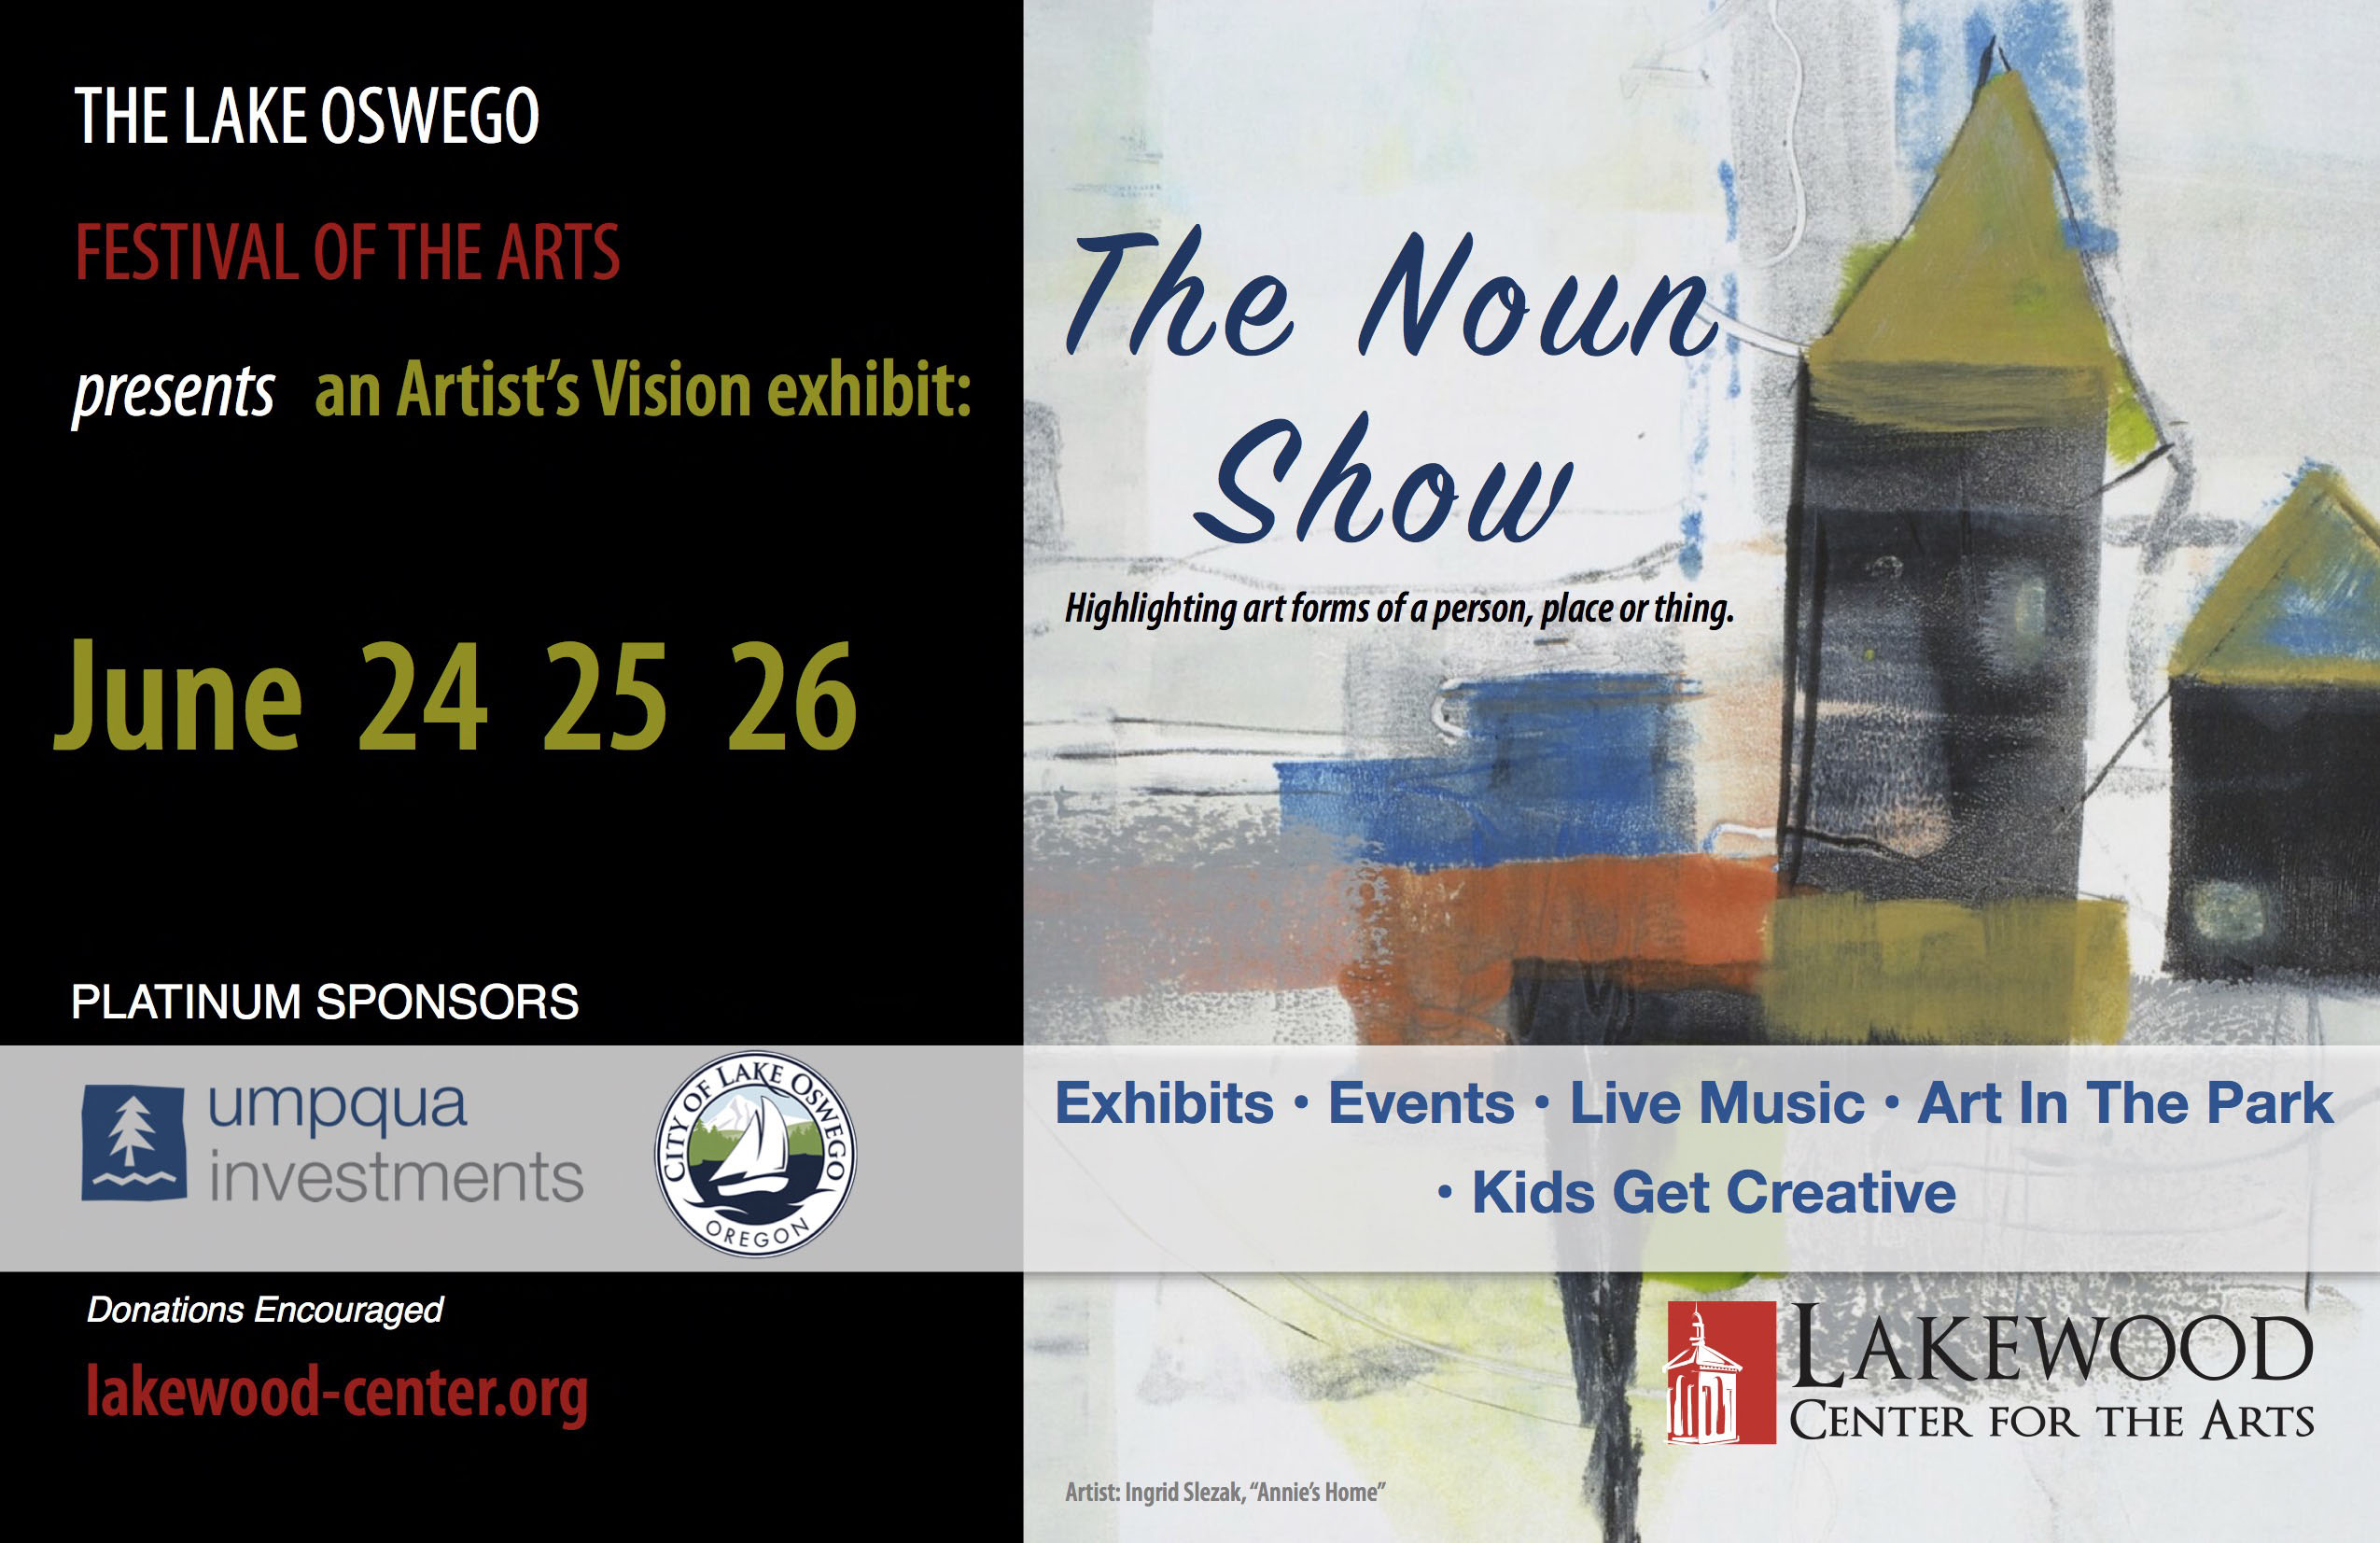 Artists Vision Exhibit at the 2016 Lake Oswego Festival of the Arts at Lakewood Center for the Arts, June 24, 25 & 26, 2016